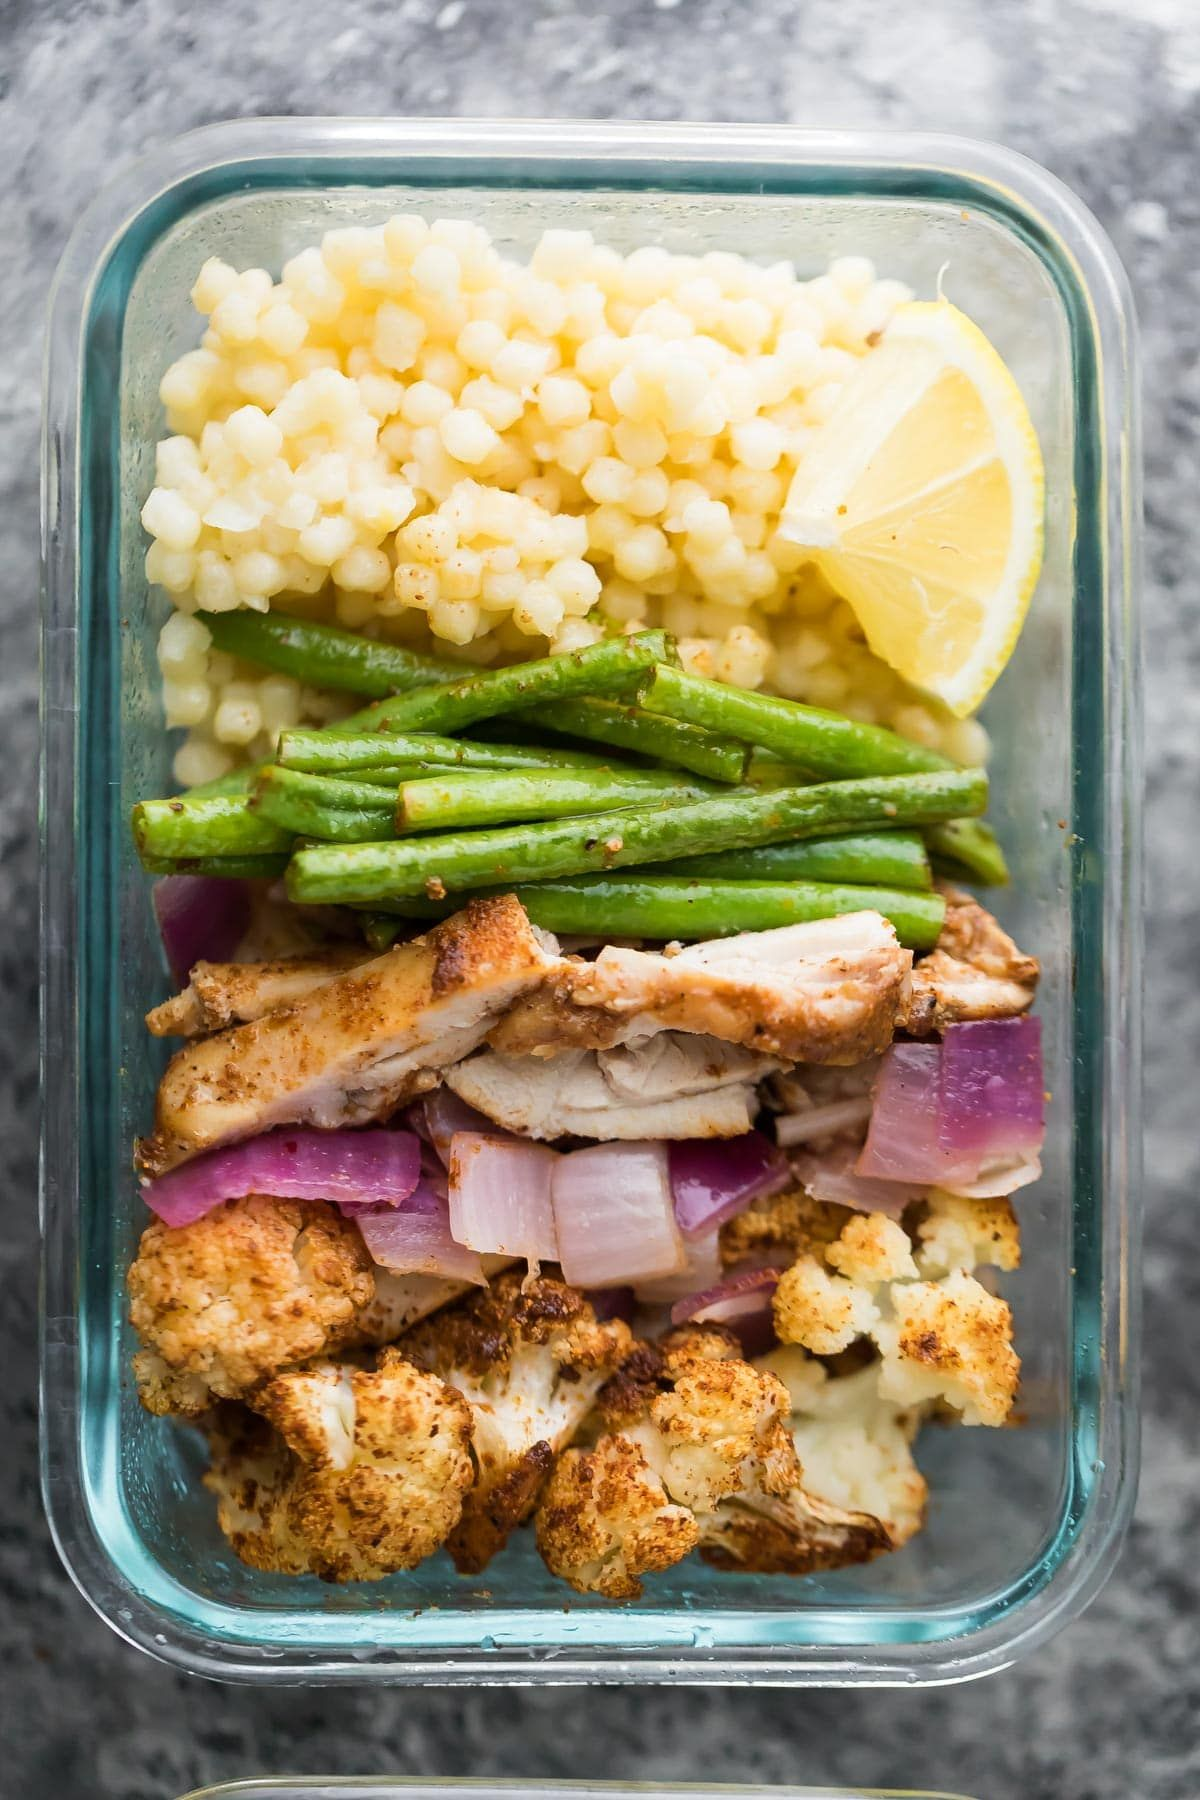 Meal Prep Lunch Recipes Under 400 Calories Meal Pr